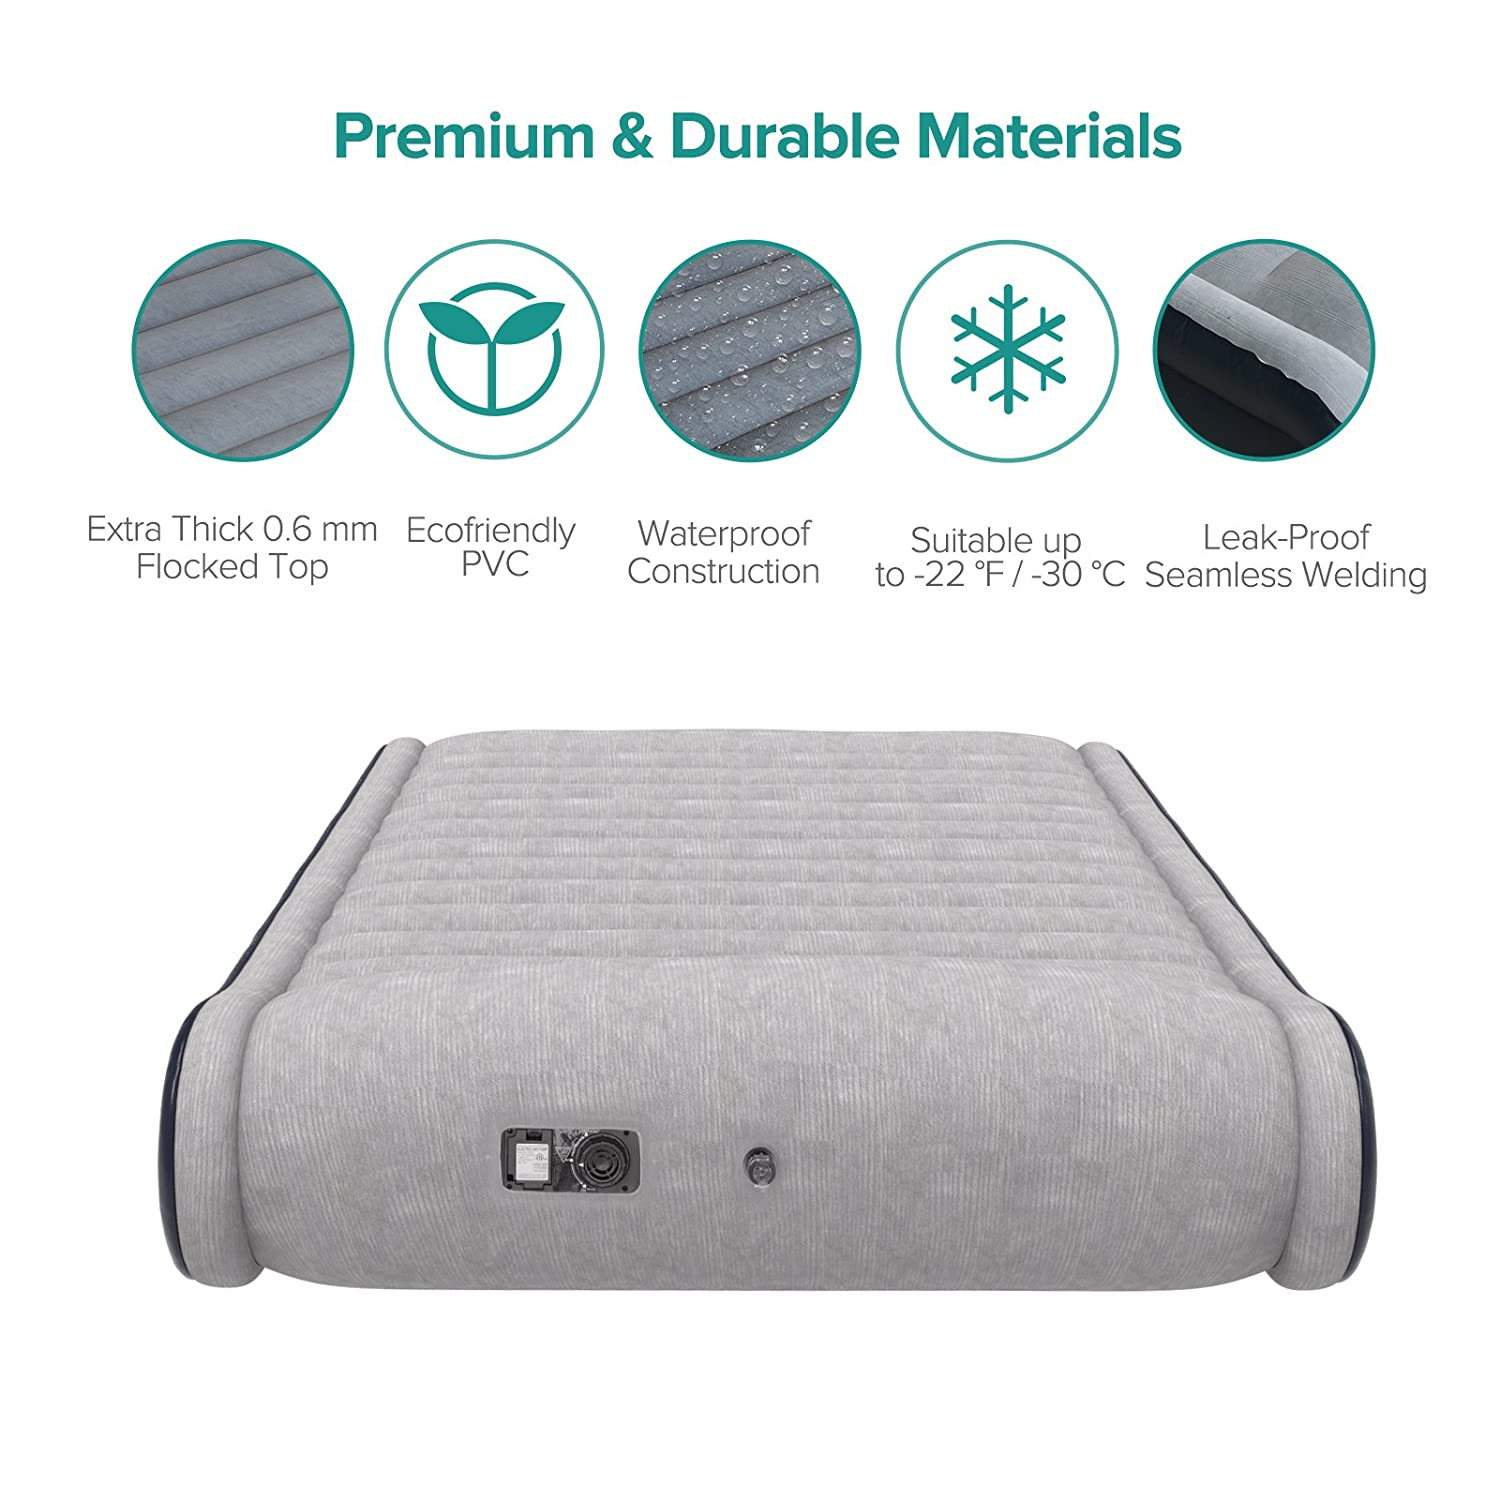 The 5 Best Air Mattresses for Children In 2018: Reviews & Buying Guide 16